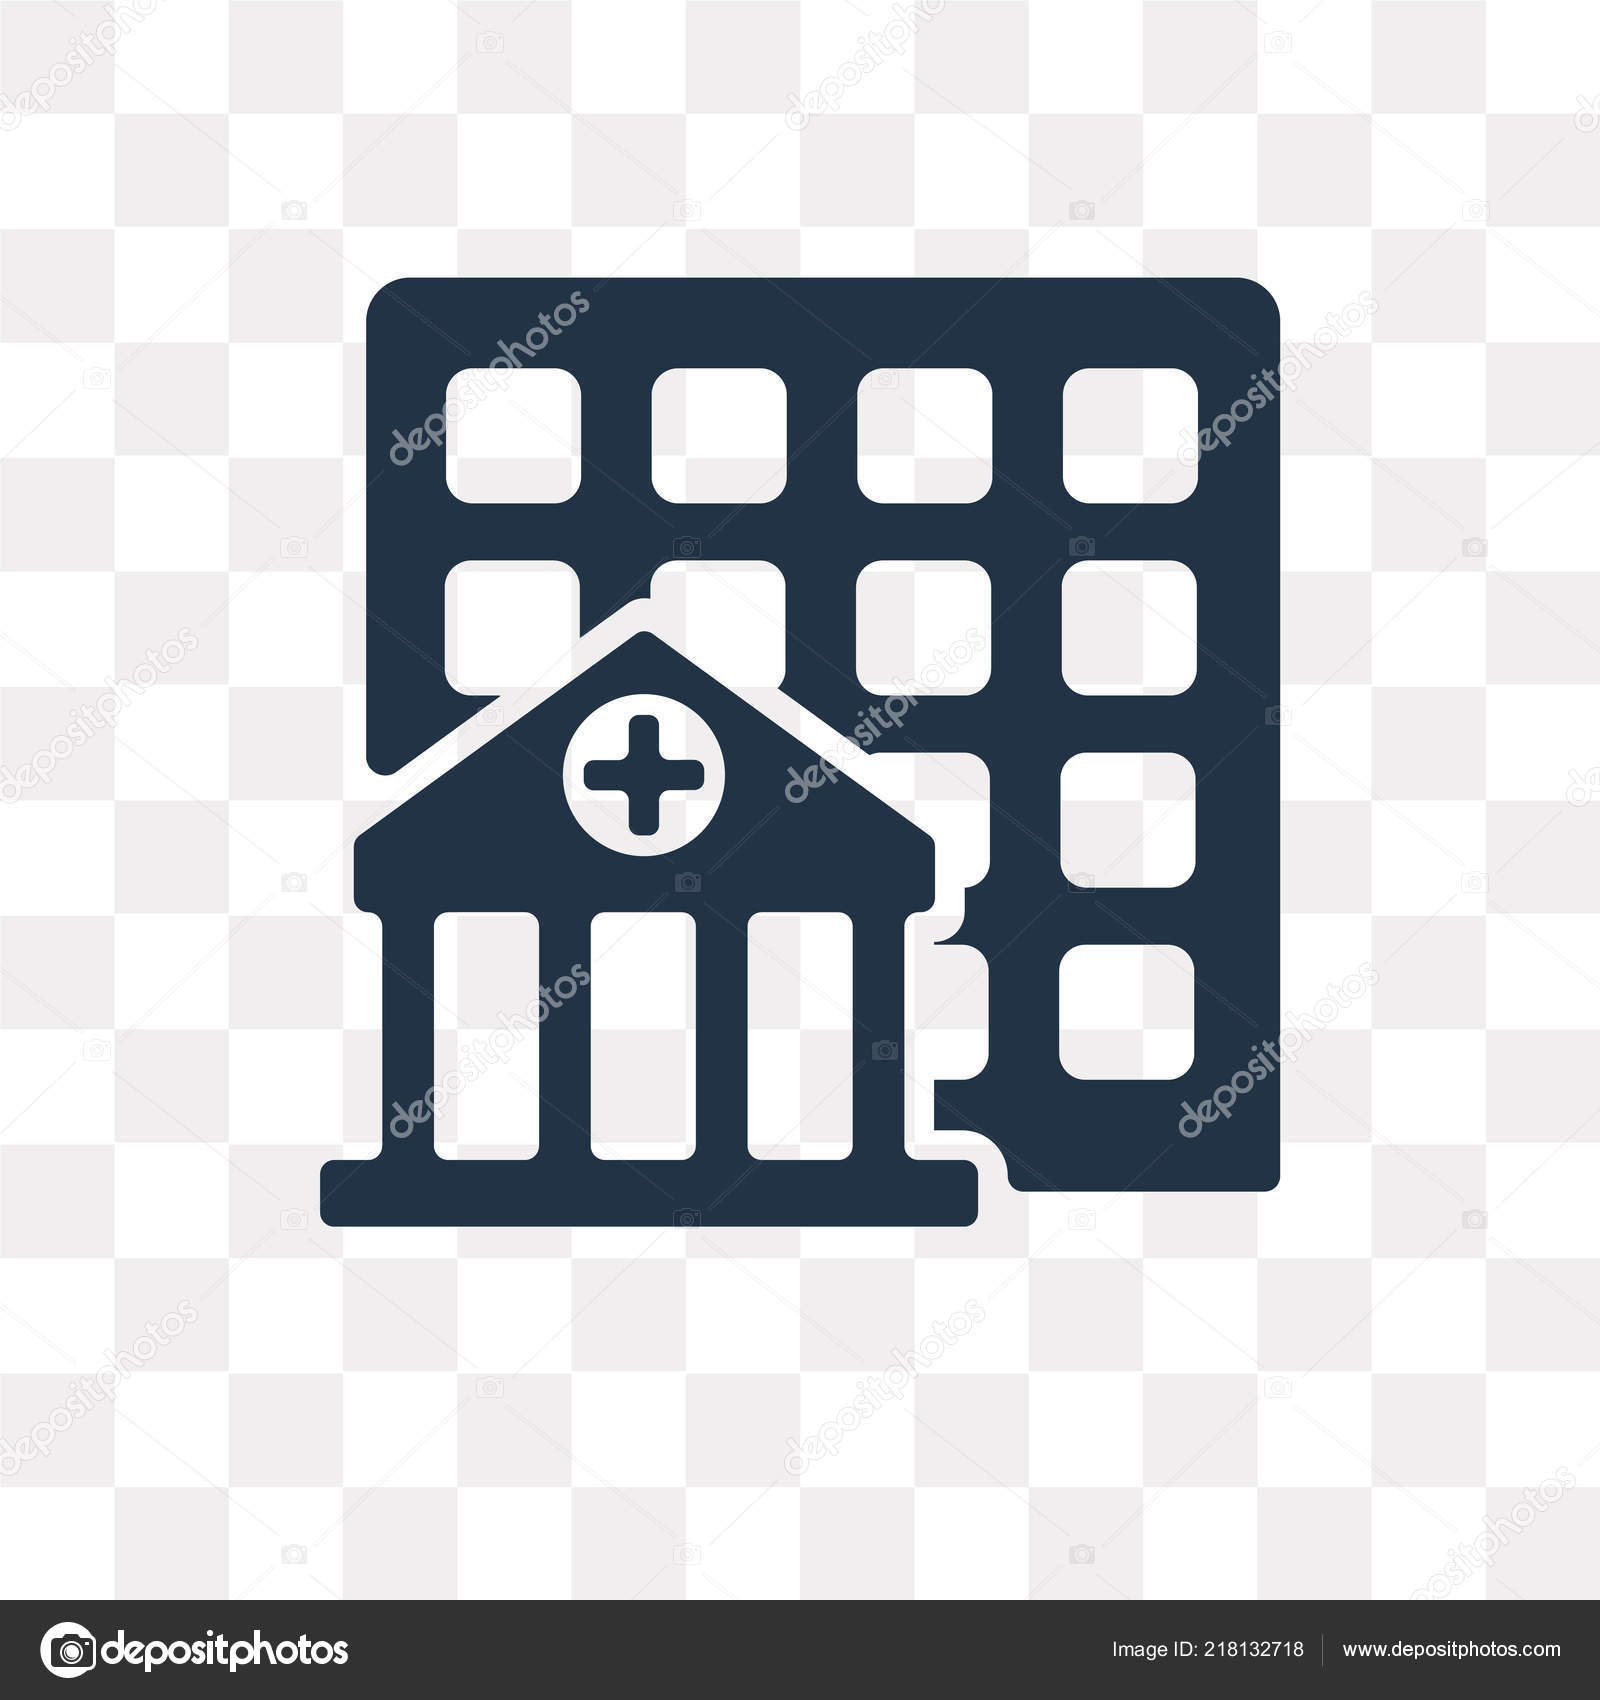 Hospital Vector Icon Isolated Transparent Background